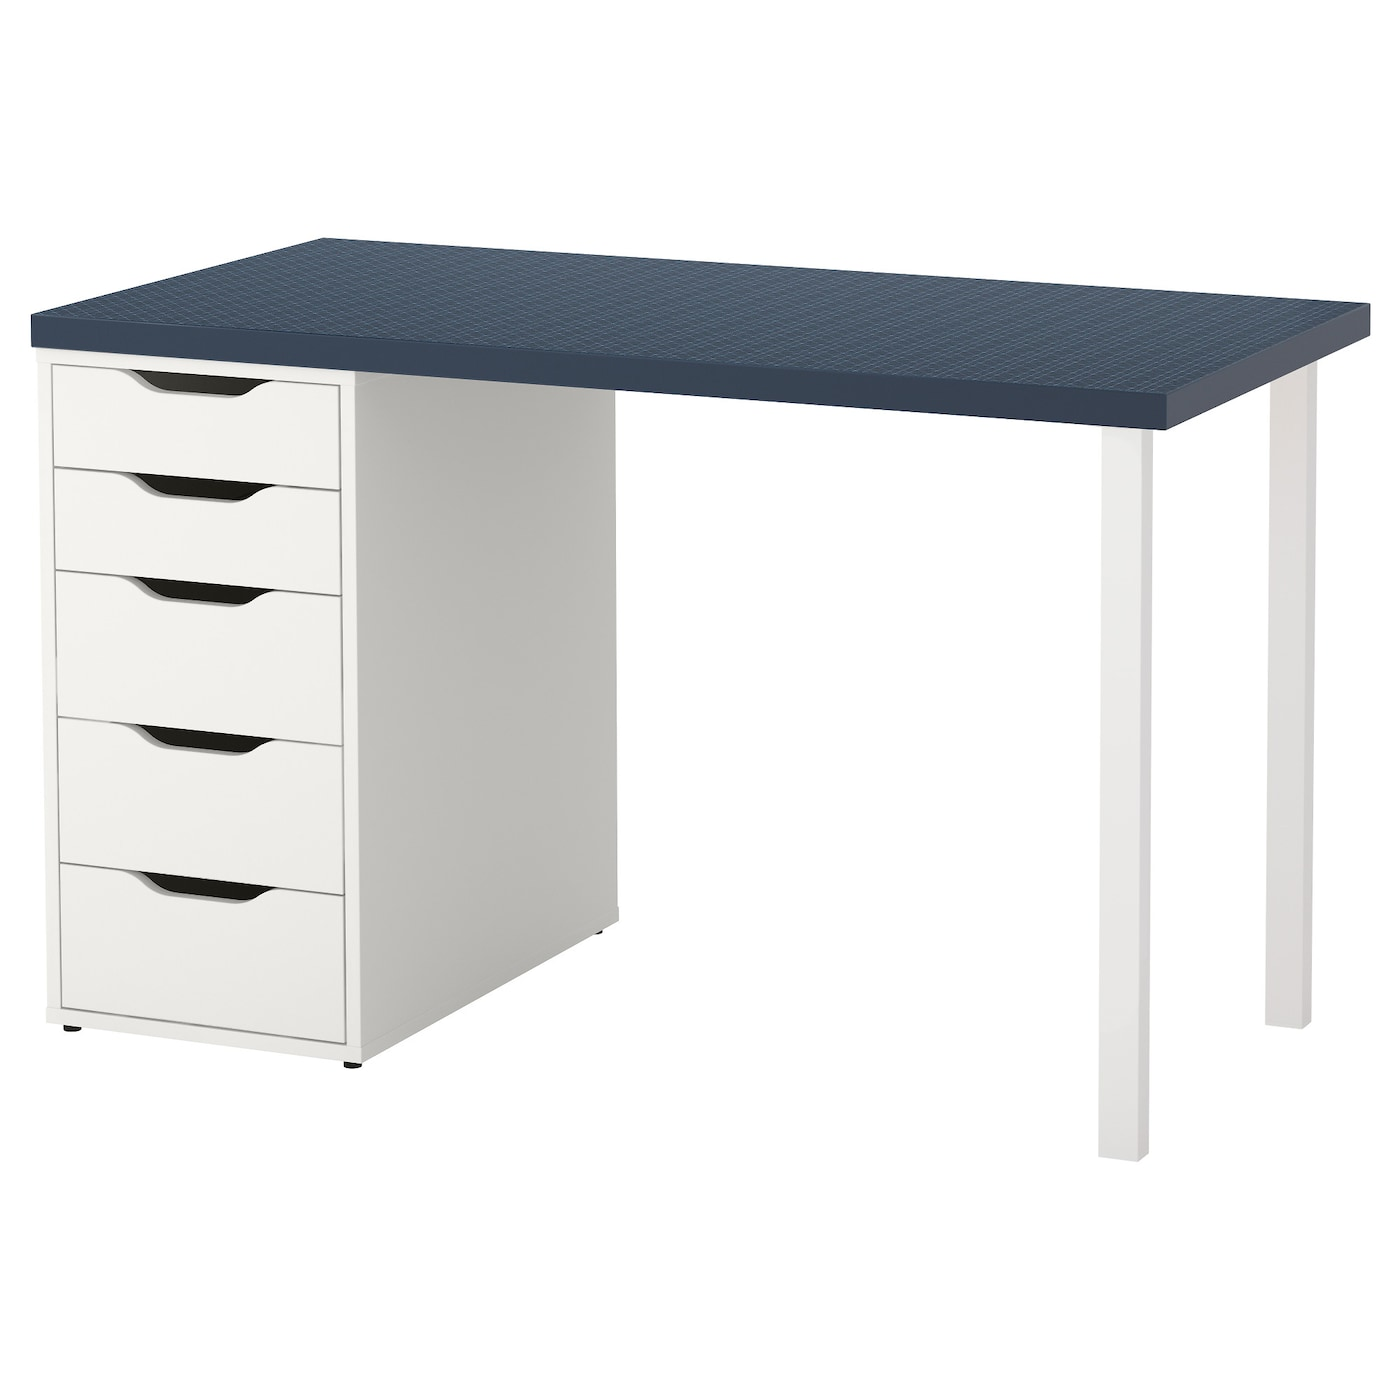 alex linnmon table geometric blue white 120 x 60 cm ikea. Black Bedroom Furniture Sets. Home Design Ideas